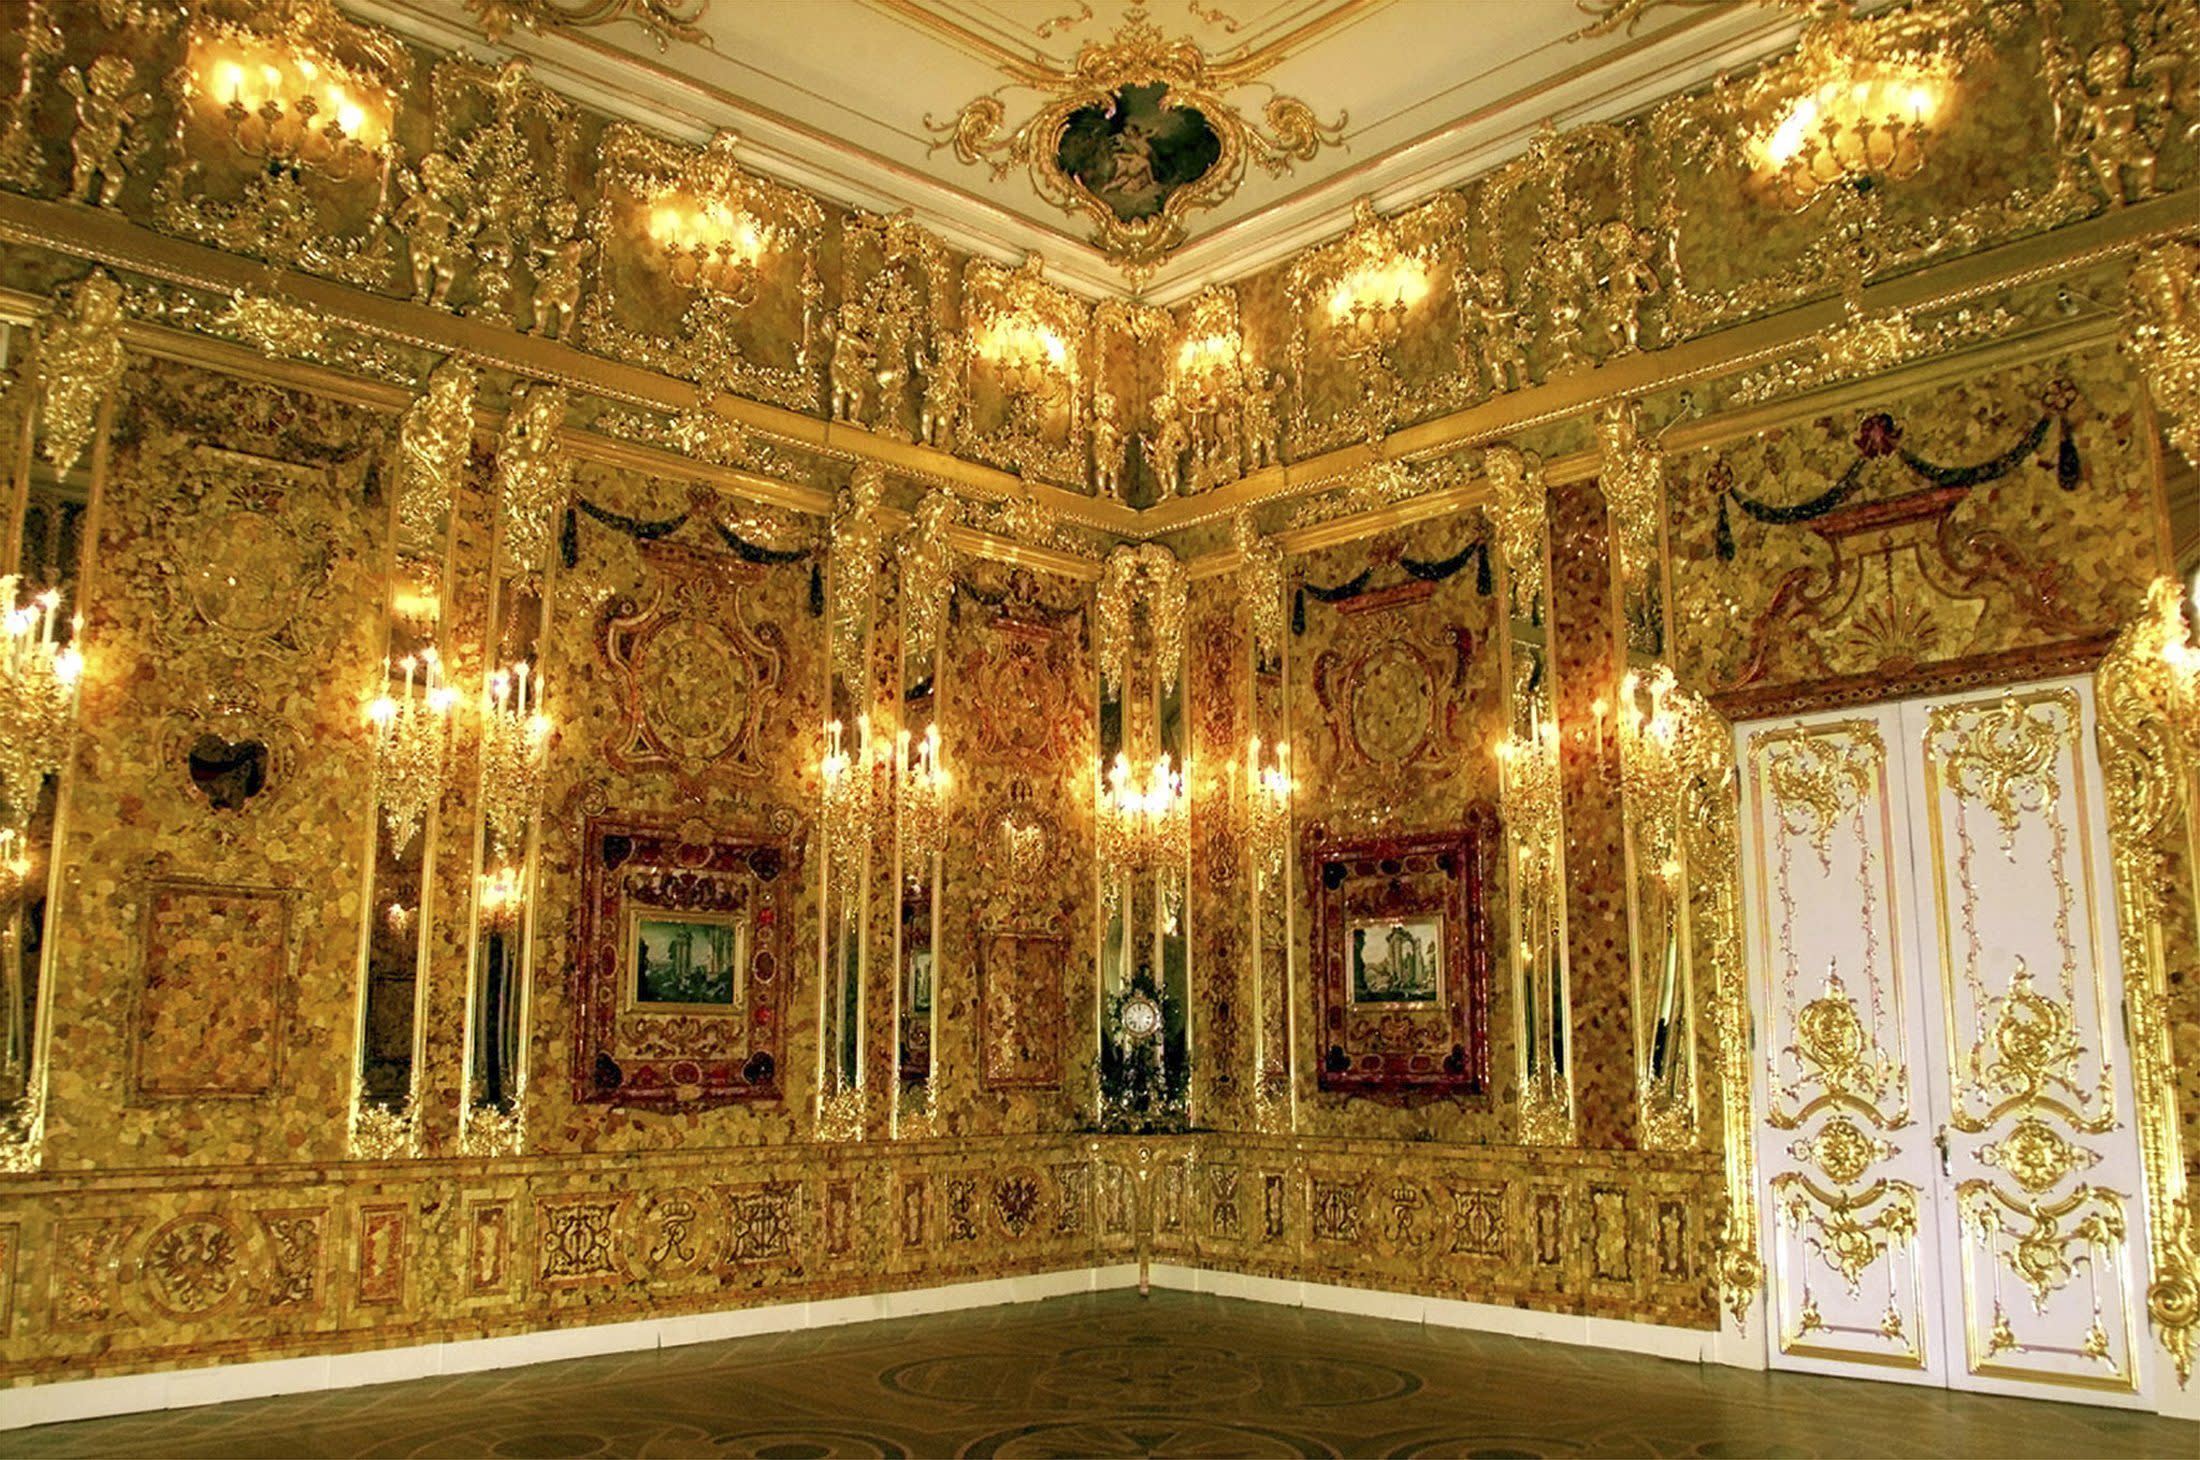 File photo of Russia's legendary Amber Room, back in place in the Catherine Palace outside St Petersburg after 20 years of painstaking reconstruction by Russian craftsmen, May 13, 2003. A German pensioner has started digging for the Amber Room, a priceless work of art looted by Nazis from the Soviet Union during World War Two that has been missing for 70 years, in the western Ruhr area but says he needs a new a drill to help him. Dubbed the Eighth Wonder of the World, the Amber Room was an ornate chamber made of amber panels given to Tsar Peter the Great by Prussia's Friedrich Wilhelm I in 1716.German troops stole the treasure chamber from a palace in St Petersburg in 1941 and took it to Koenigsberg, now the Russian enclave of Kaliningrad, before it disappeared. TO GO WITH STORY GERMANY-AMBER ROOM/ REUTERS/Alexander Demianchuk (RUSSIA - Tags: ENTERTAINMENT)